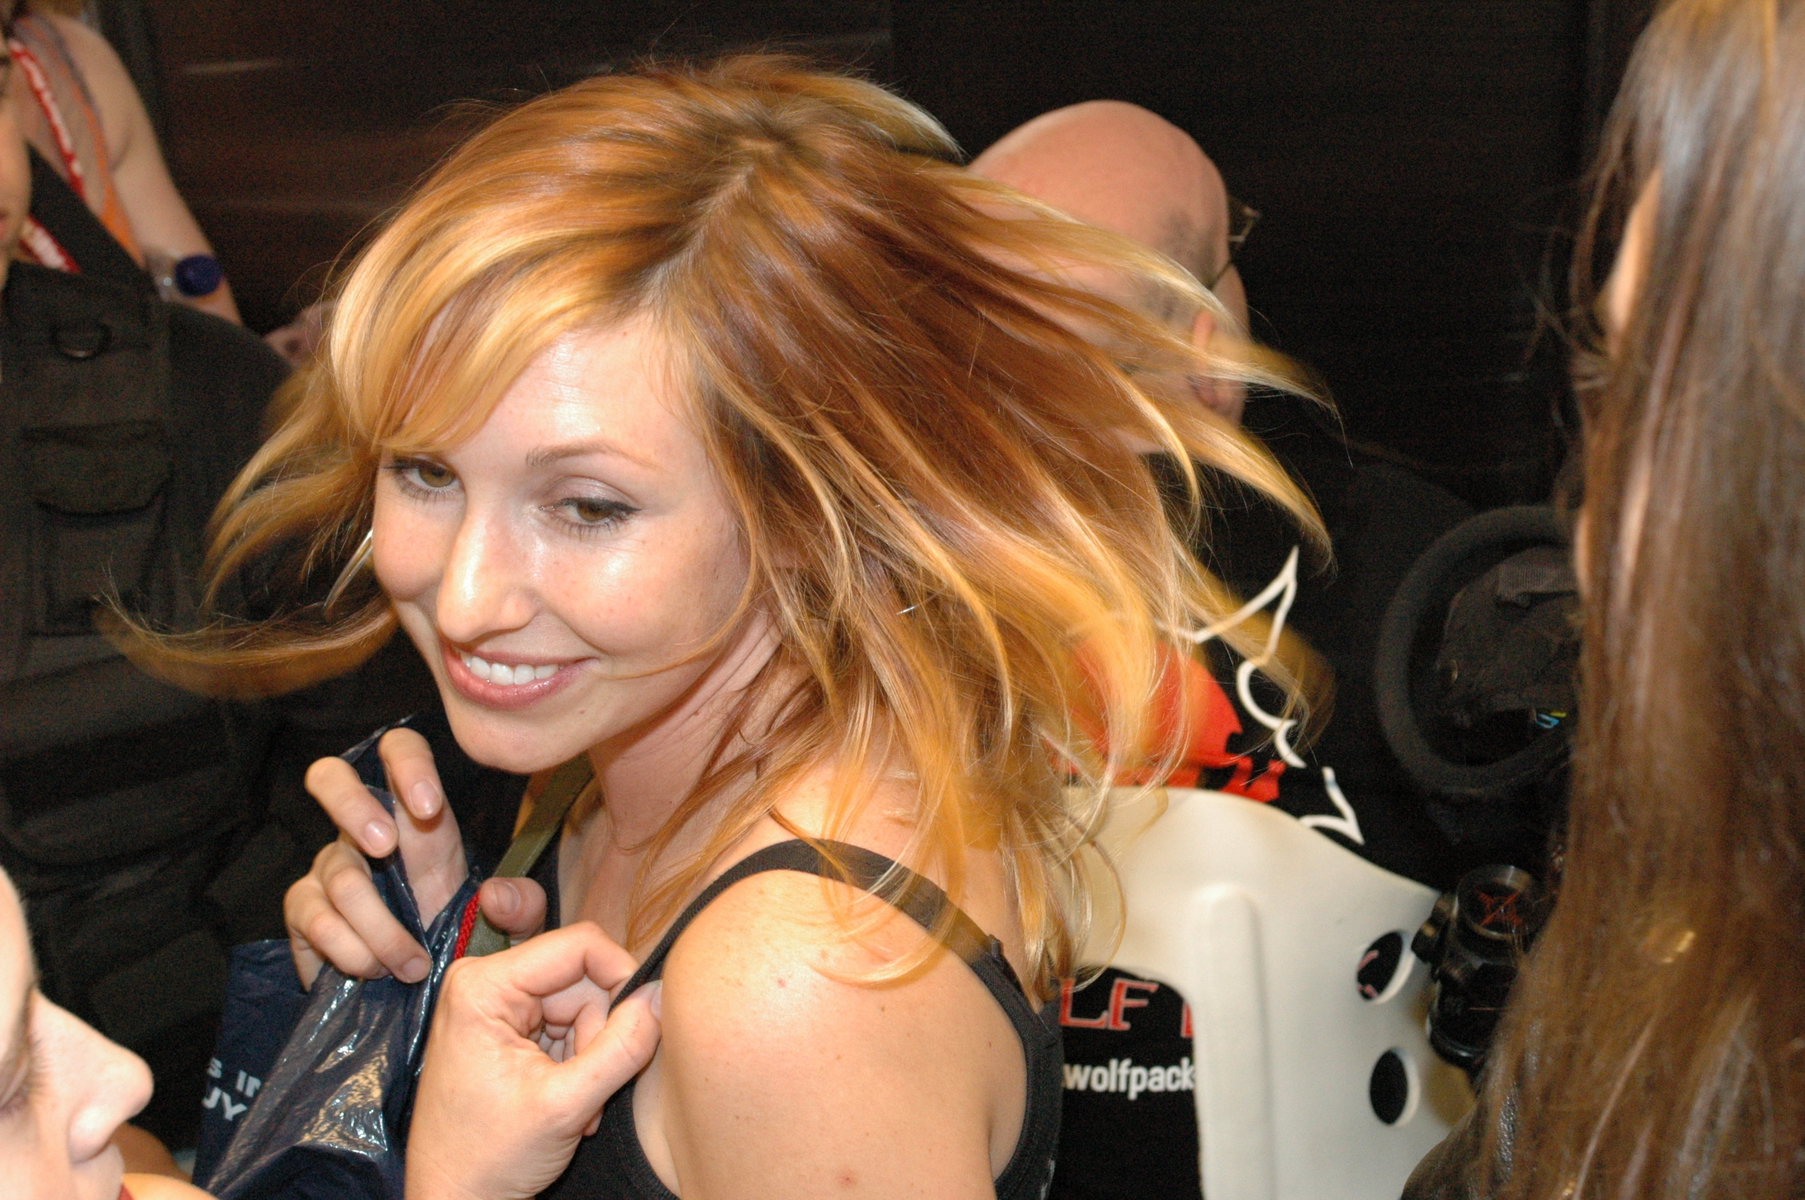 Kari Byron   Kari Byron Photo  29679746    Fanpop fanclubs